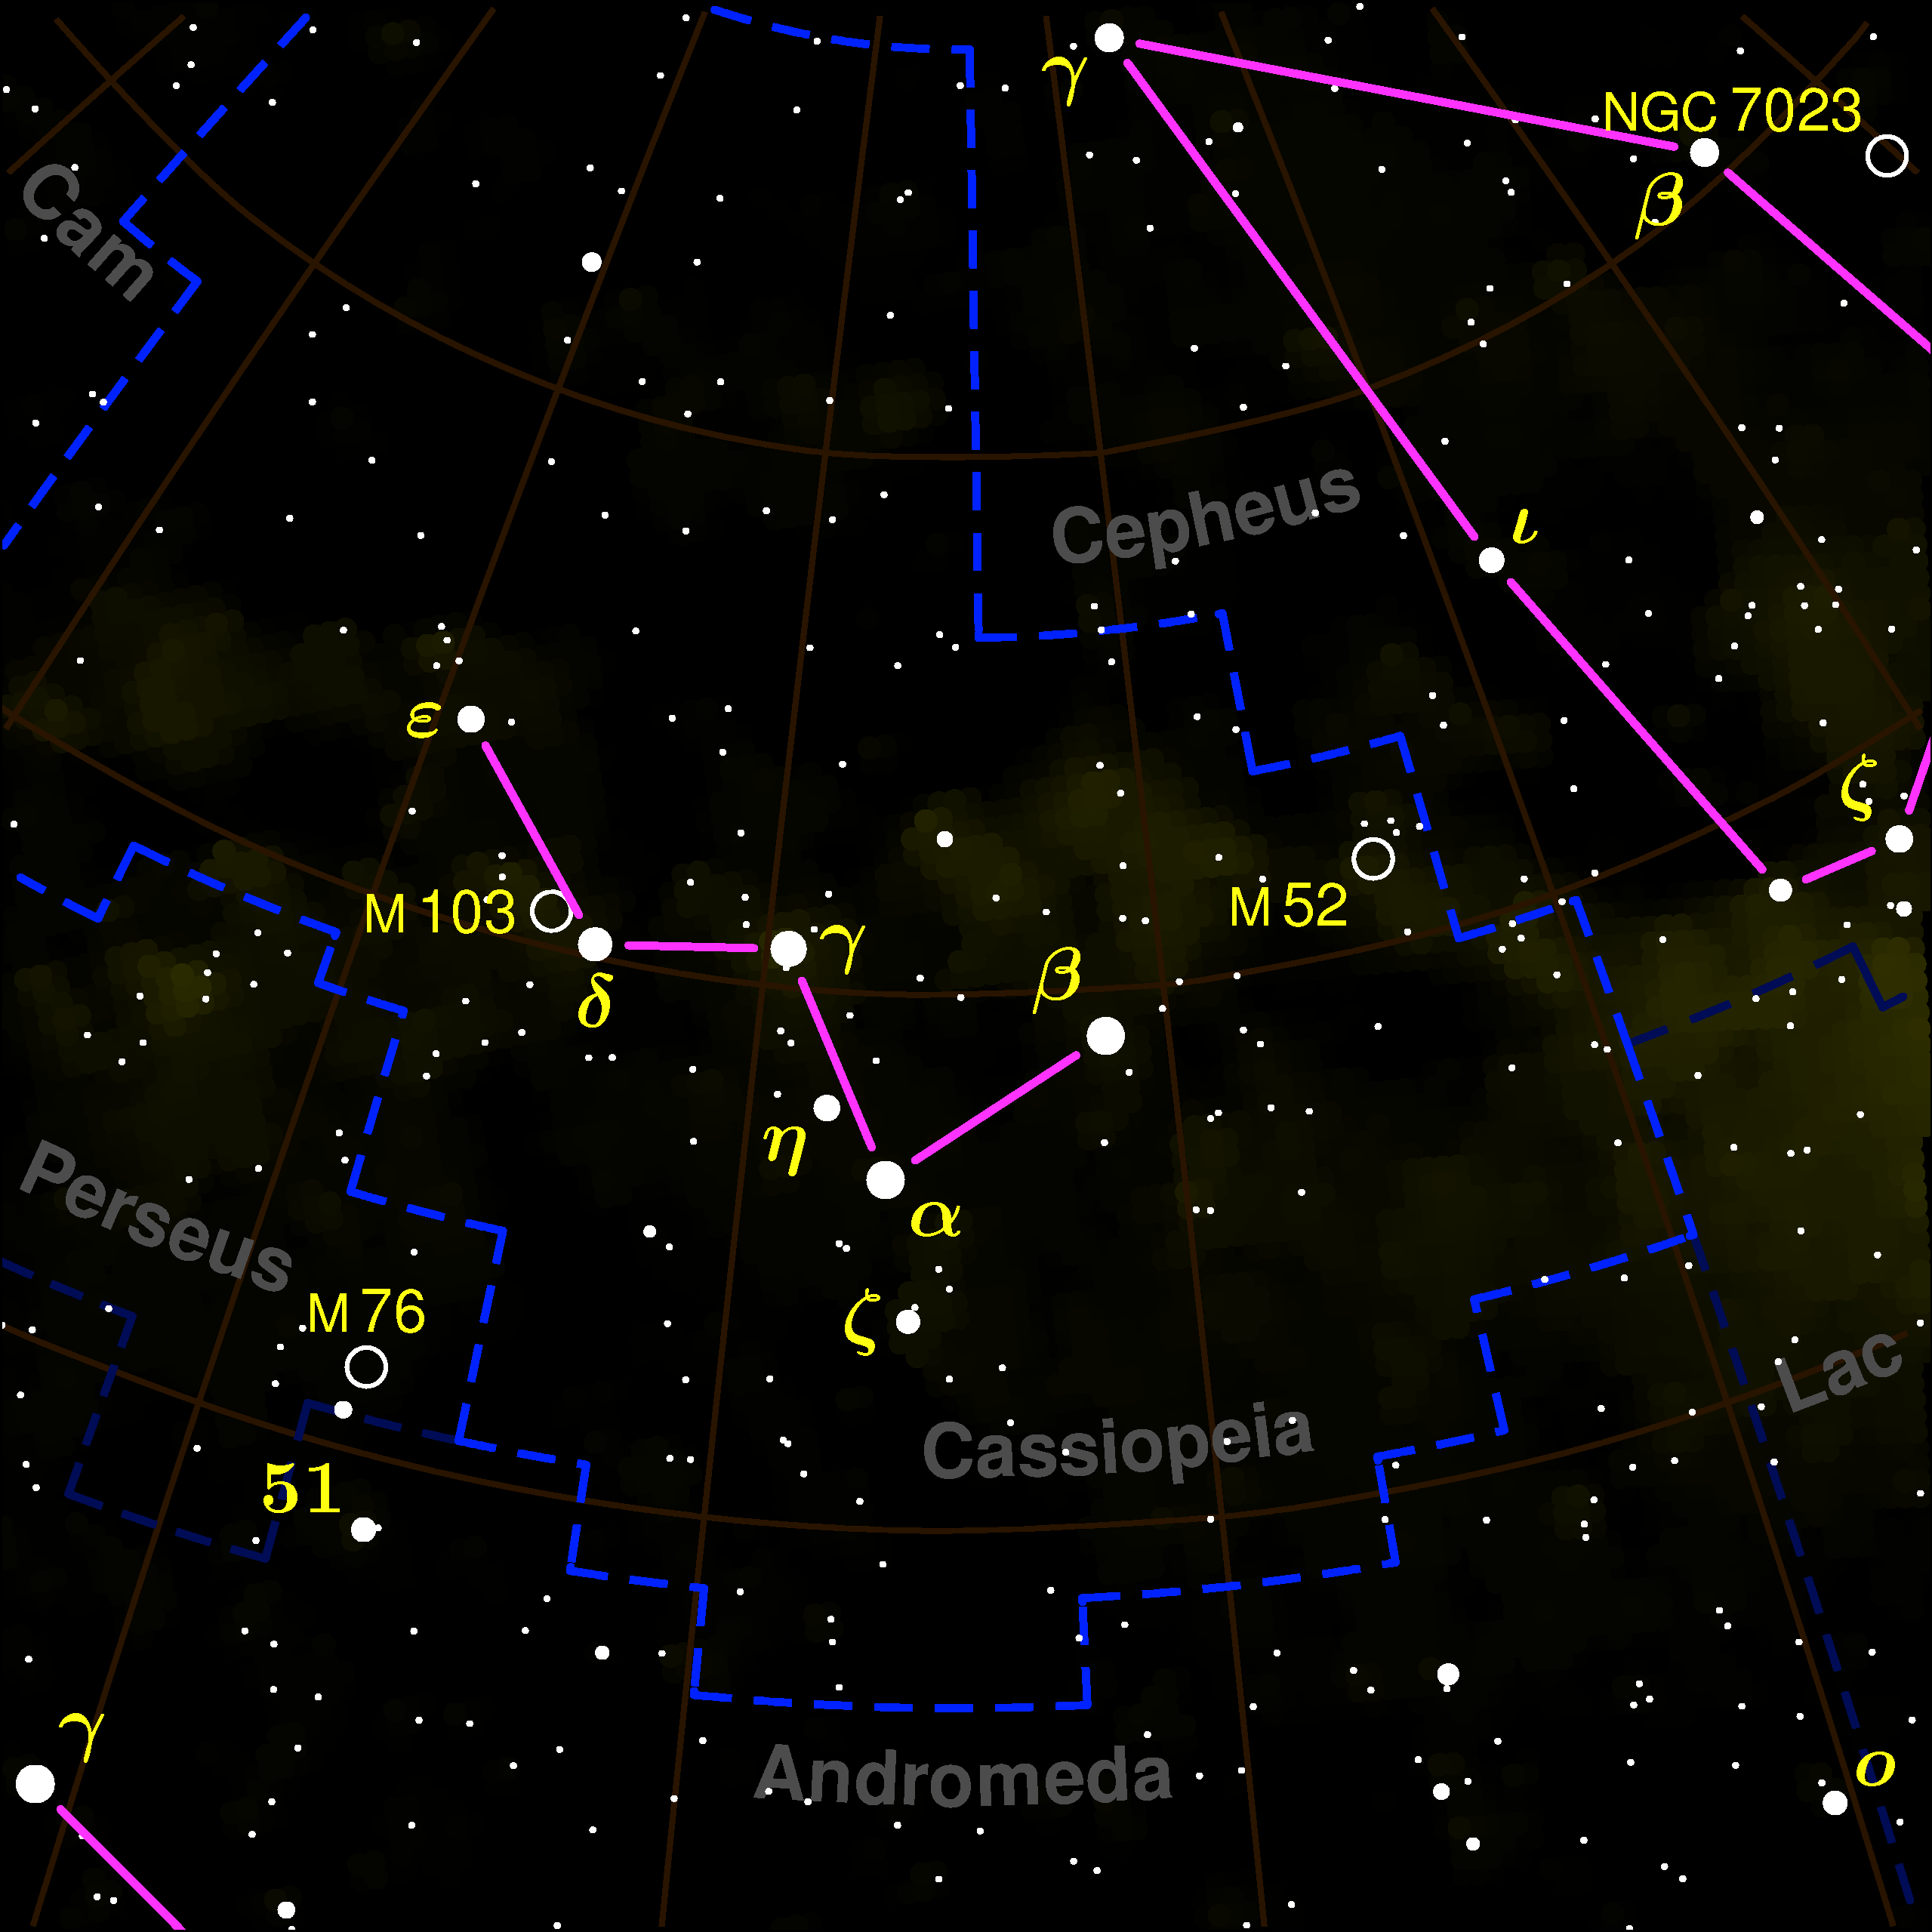 https://bitacoradegalileo.files.wordpress.com/2010/11/cassiopeia_constellation_map.png